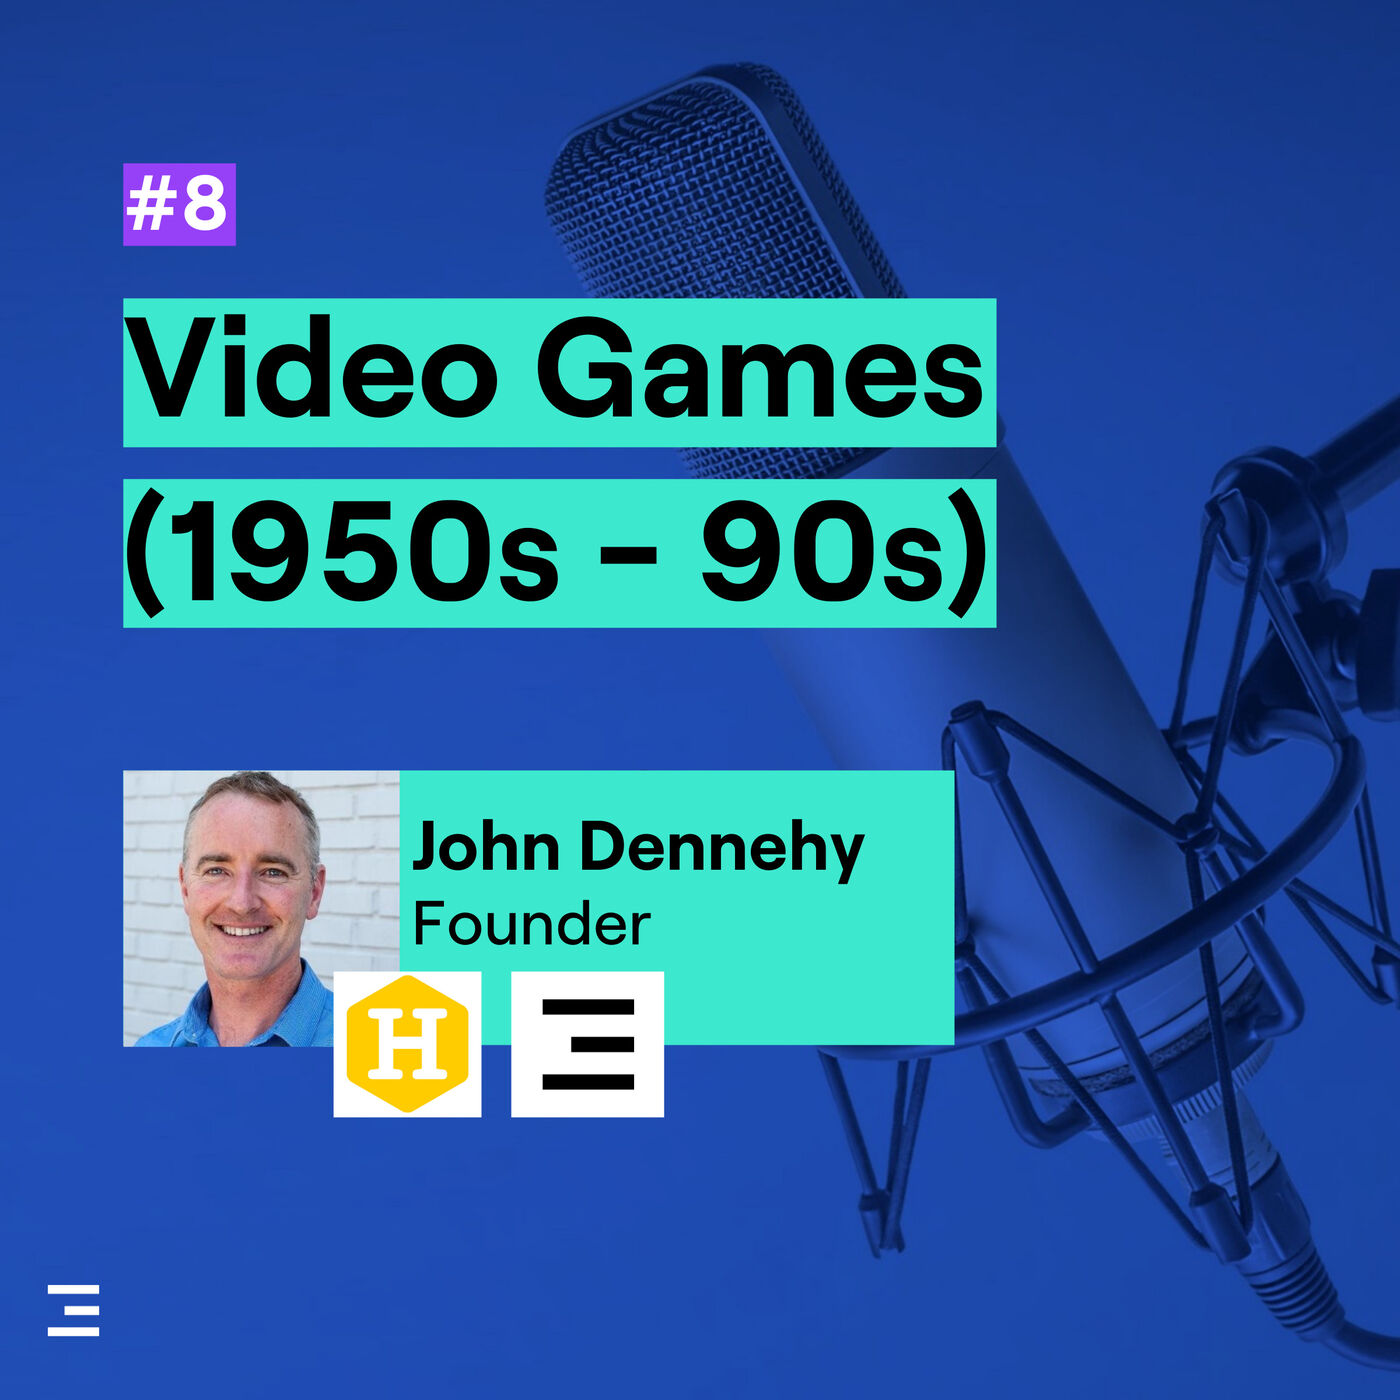 8. Video Games (1950s - 90s)